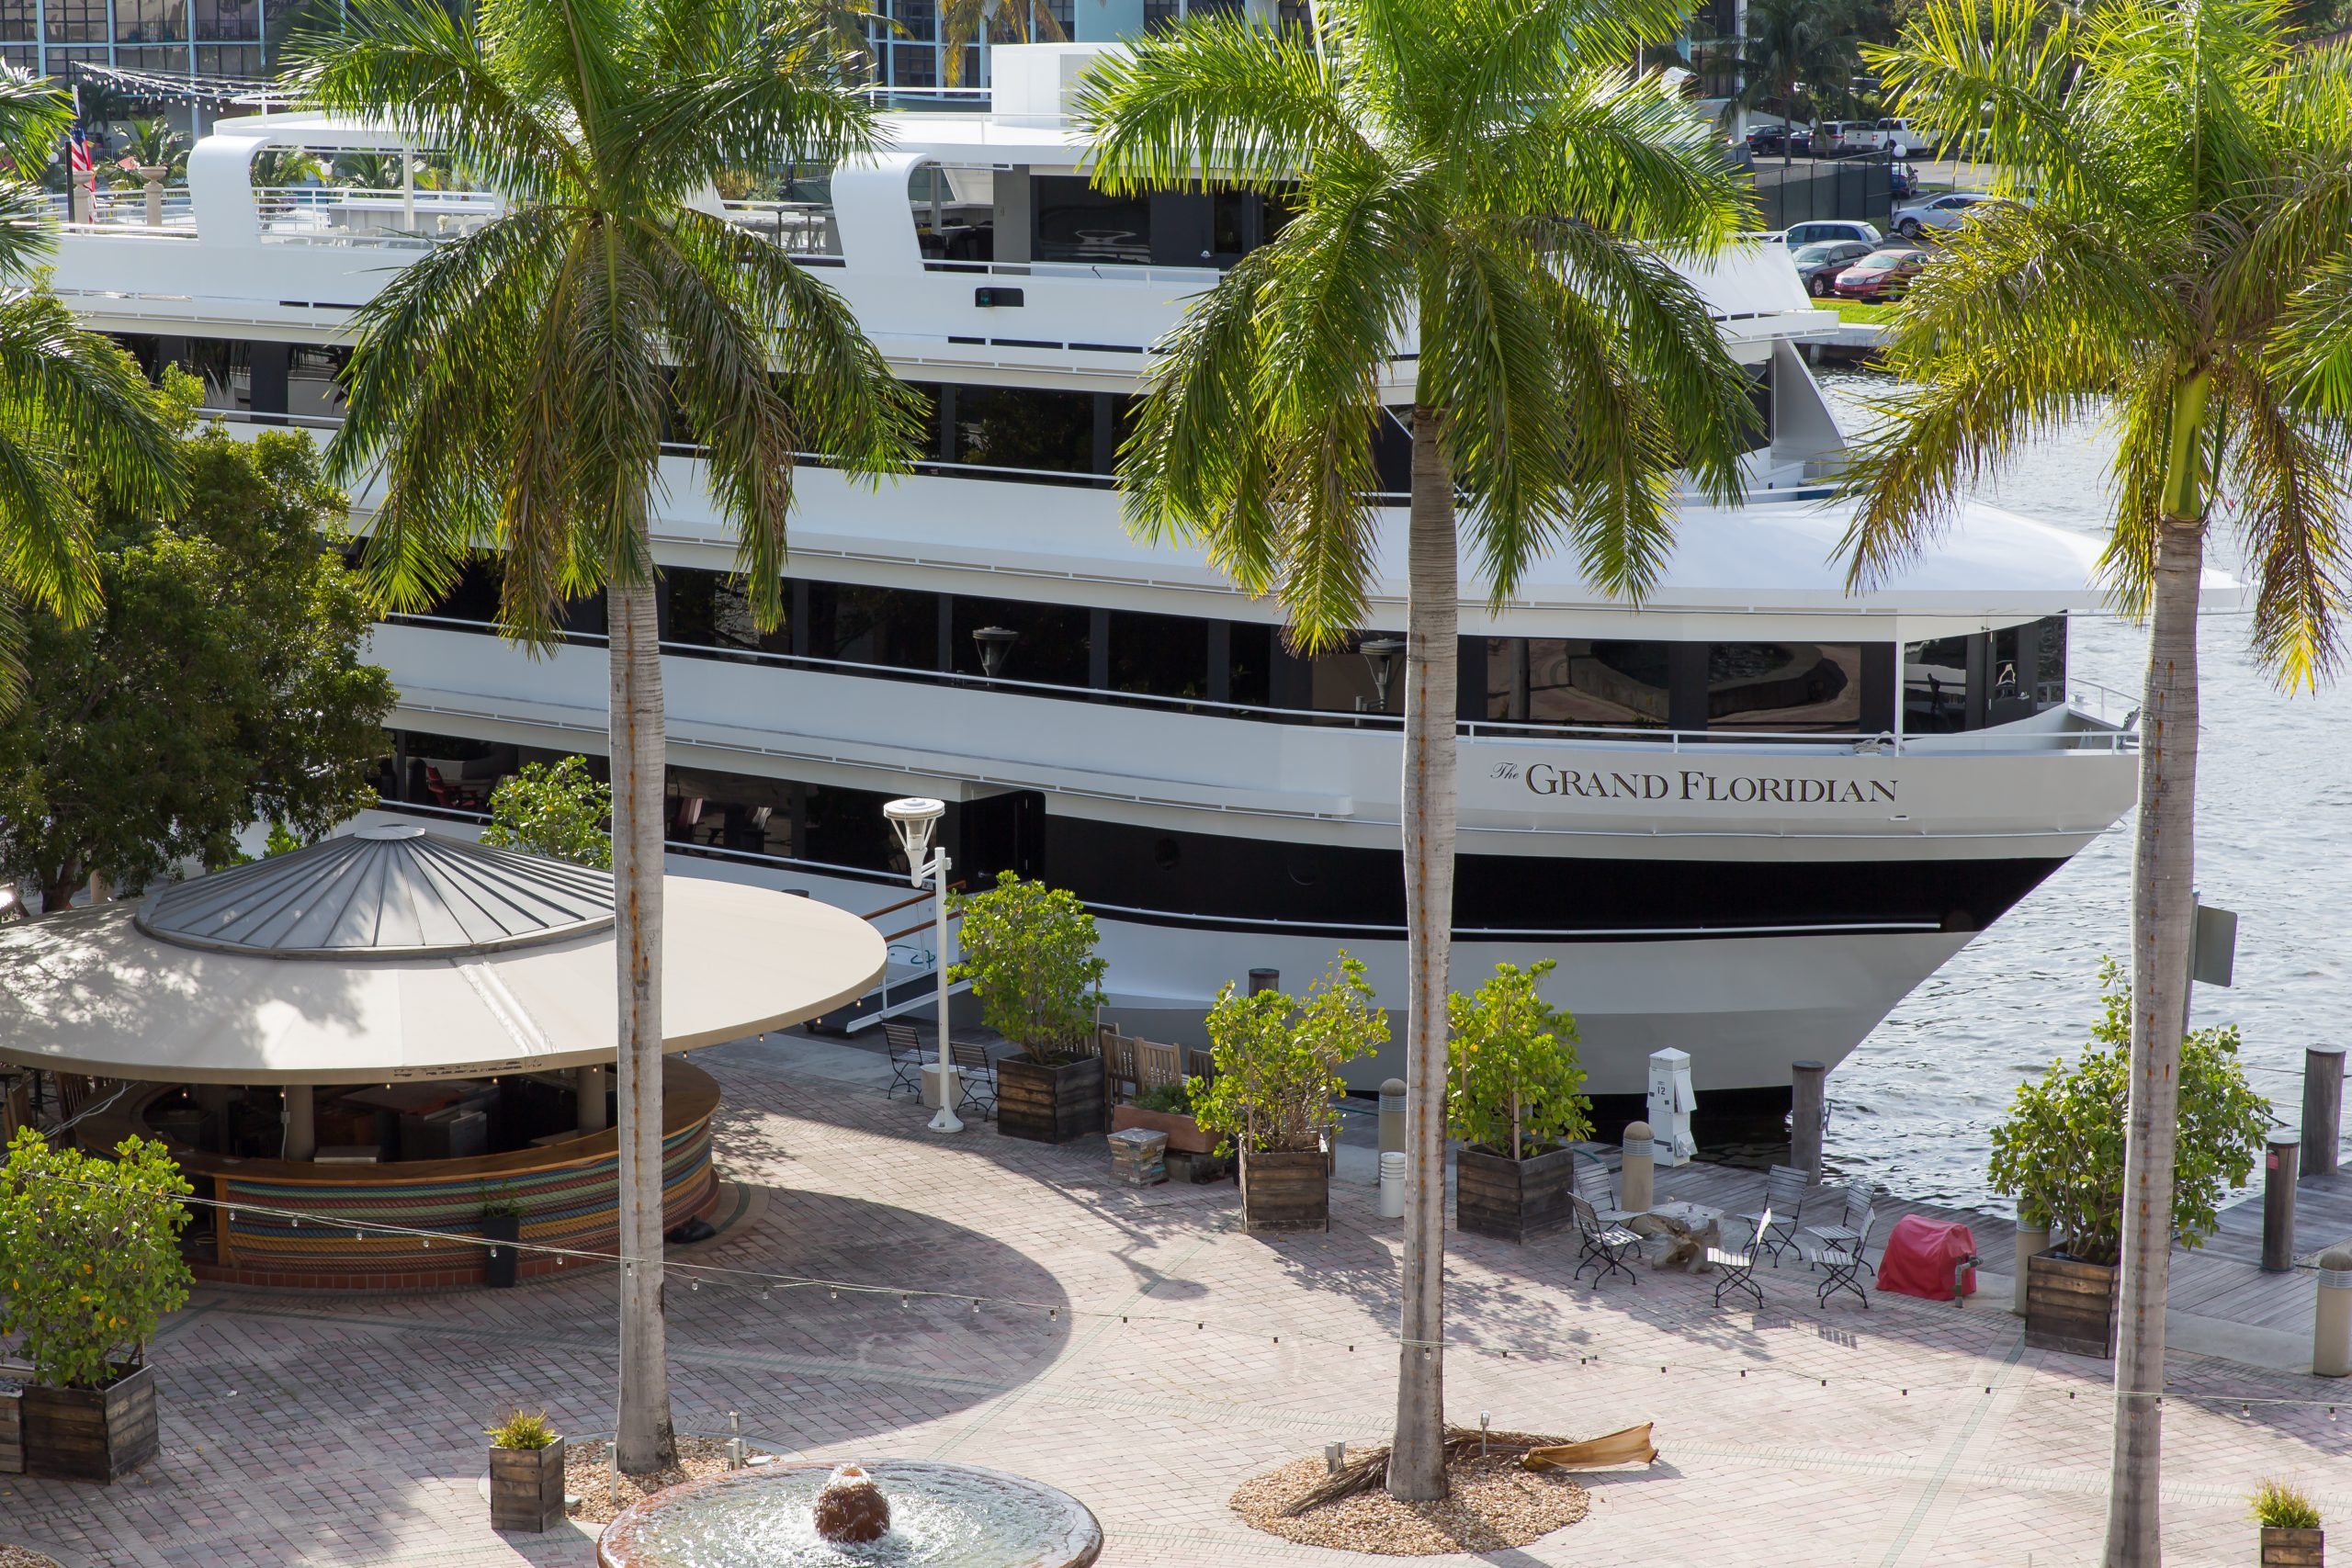 Book the most luxurious and enjoyable Yacht Dinner Cruise in Fort Lauderdale. Enjoy great food while admiring the scenery on the South Florida water,